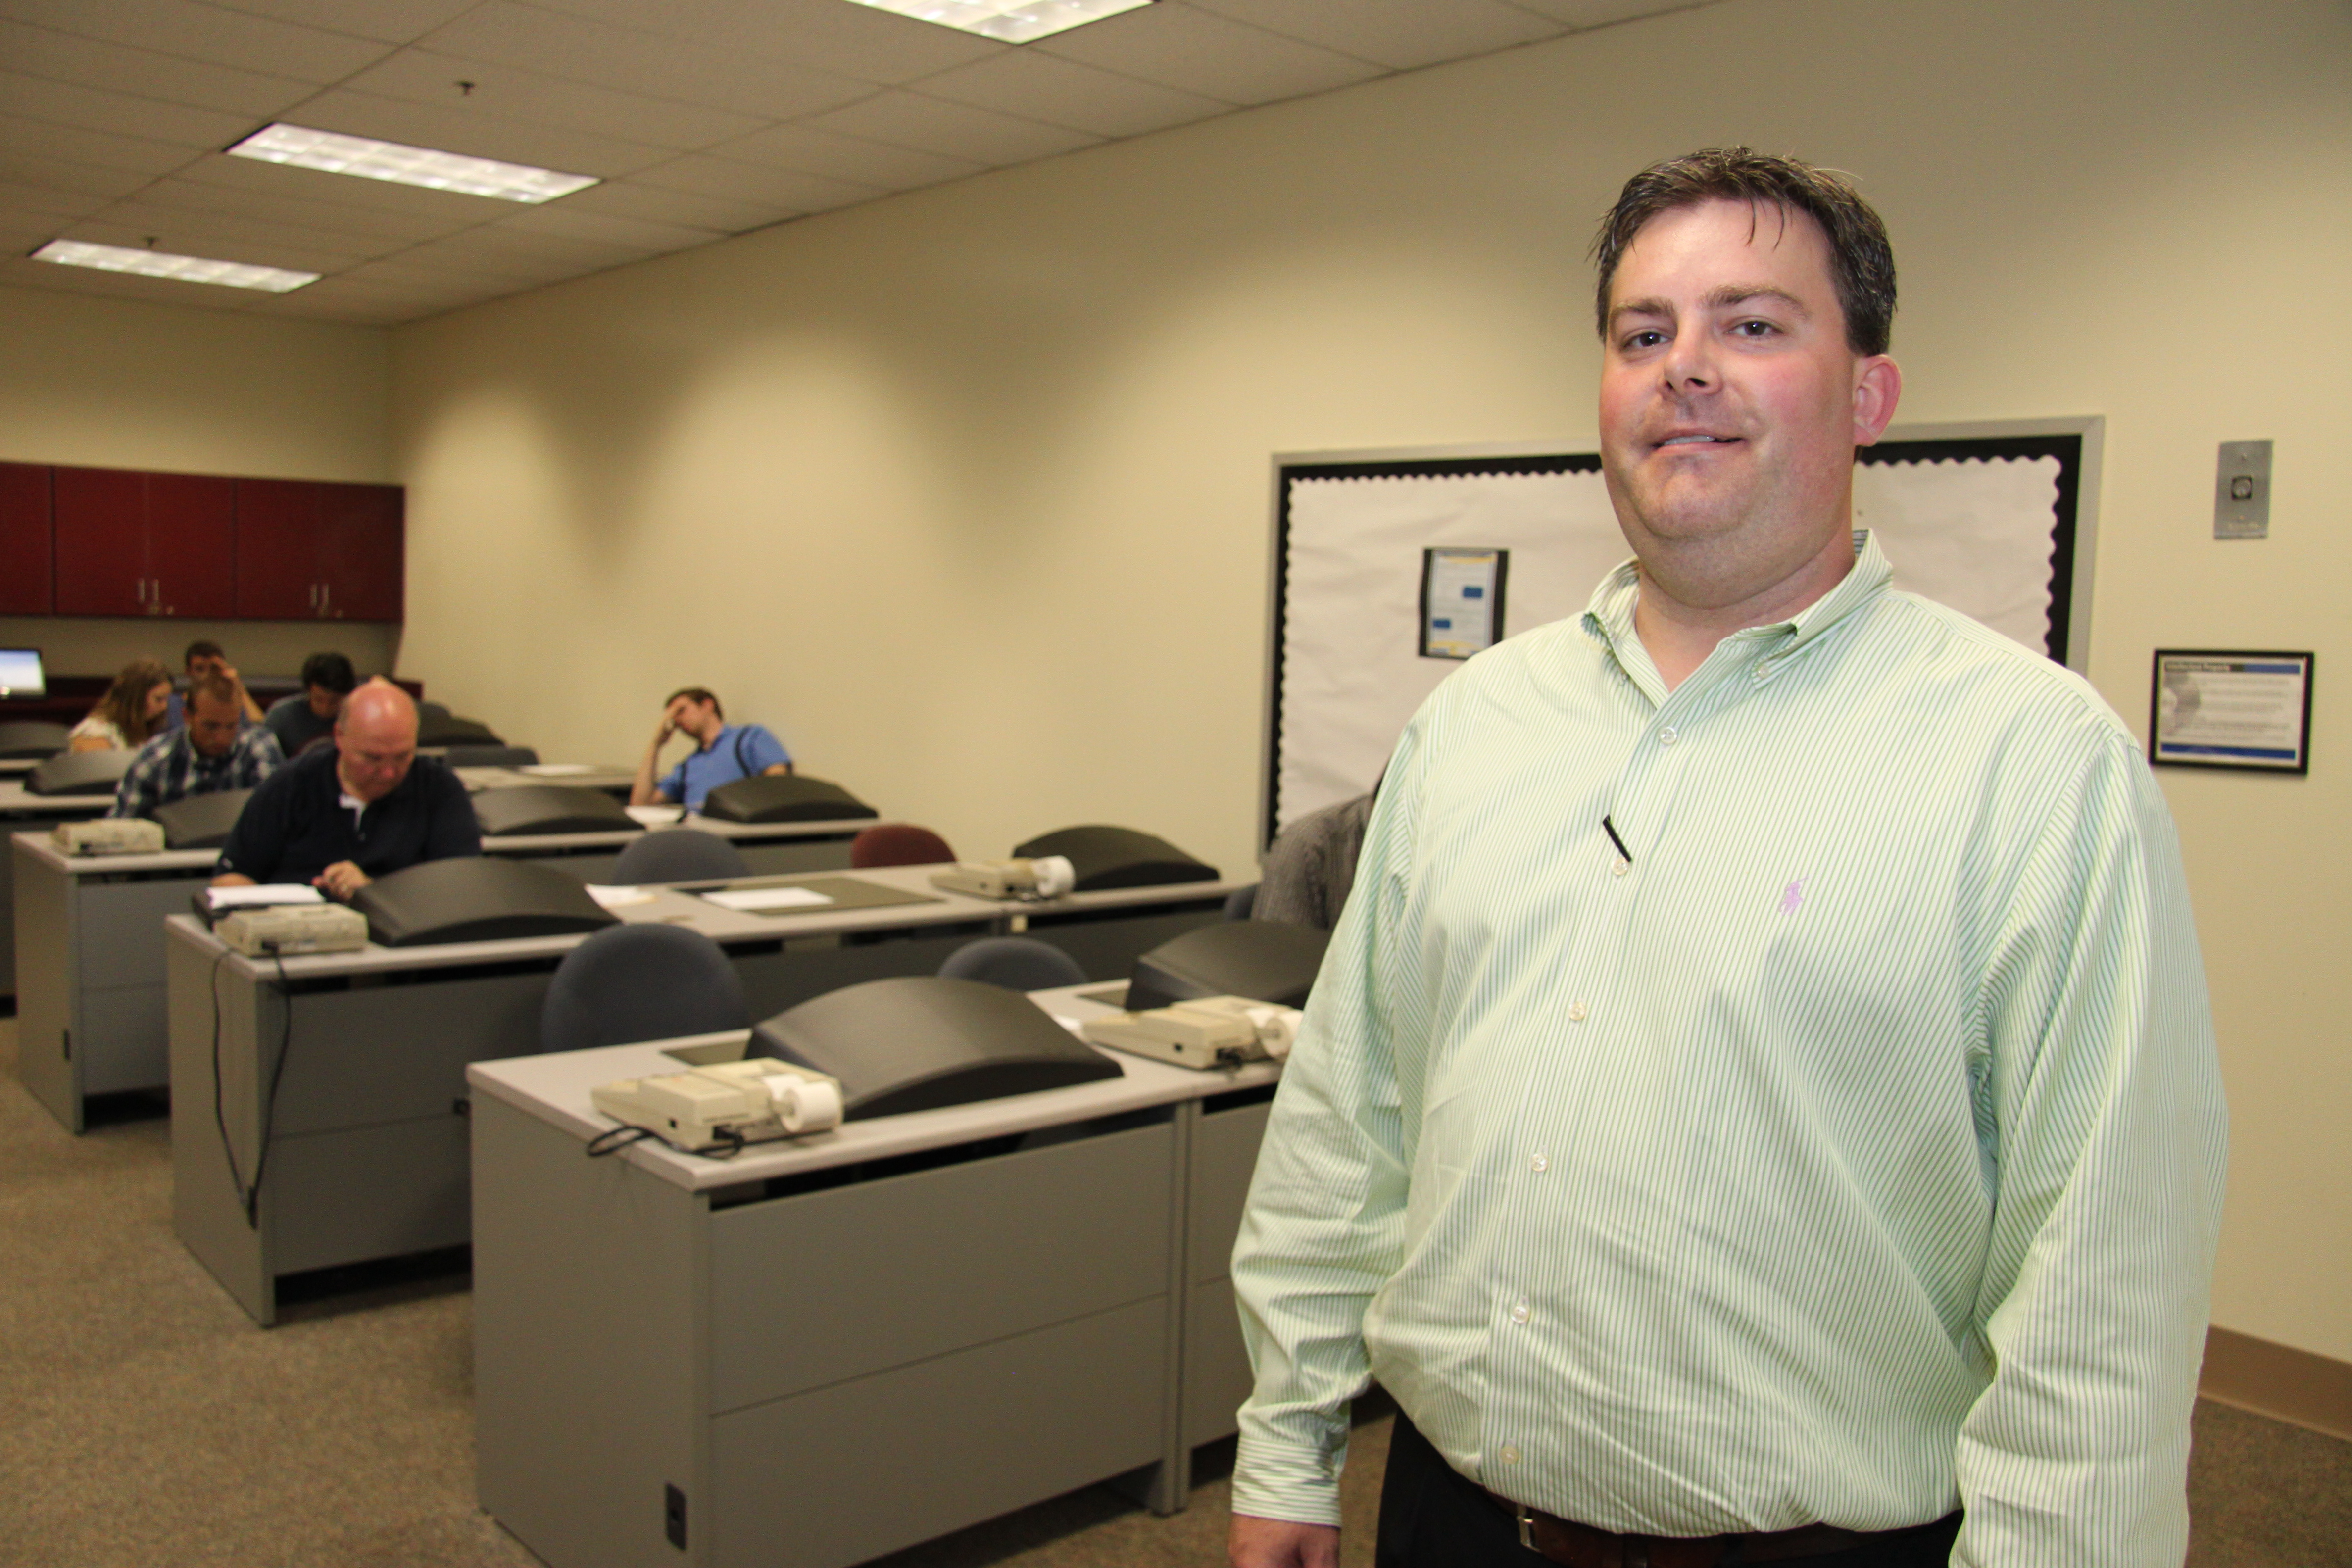 Jason Tanner in front of classroom